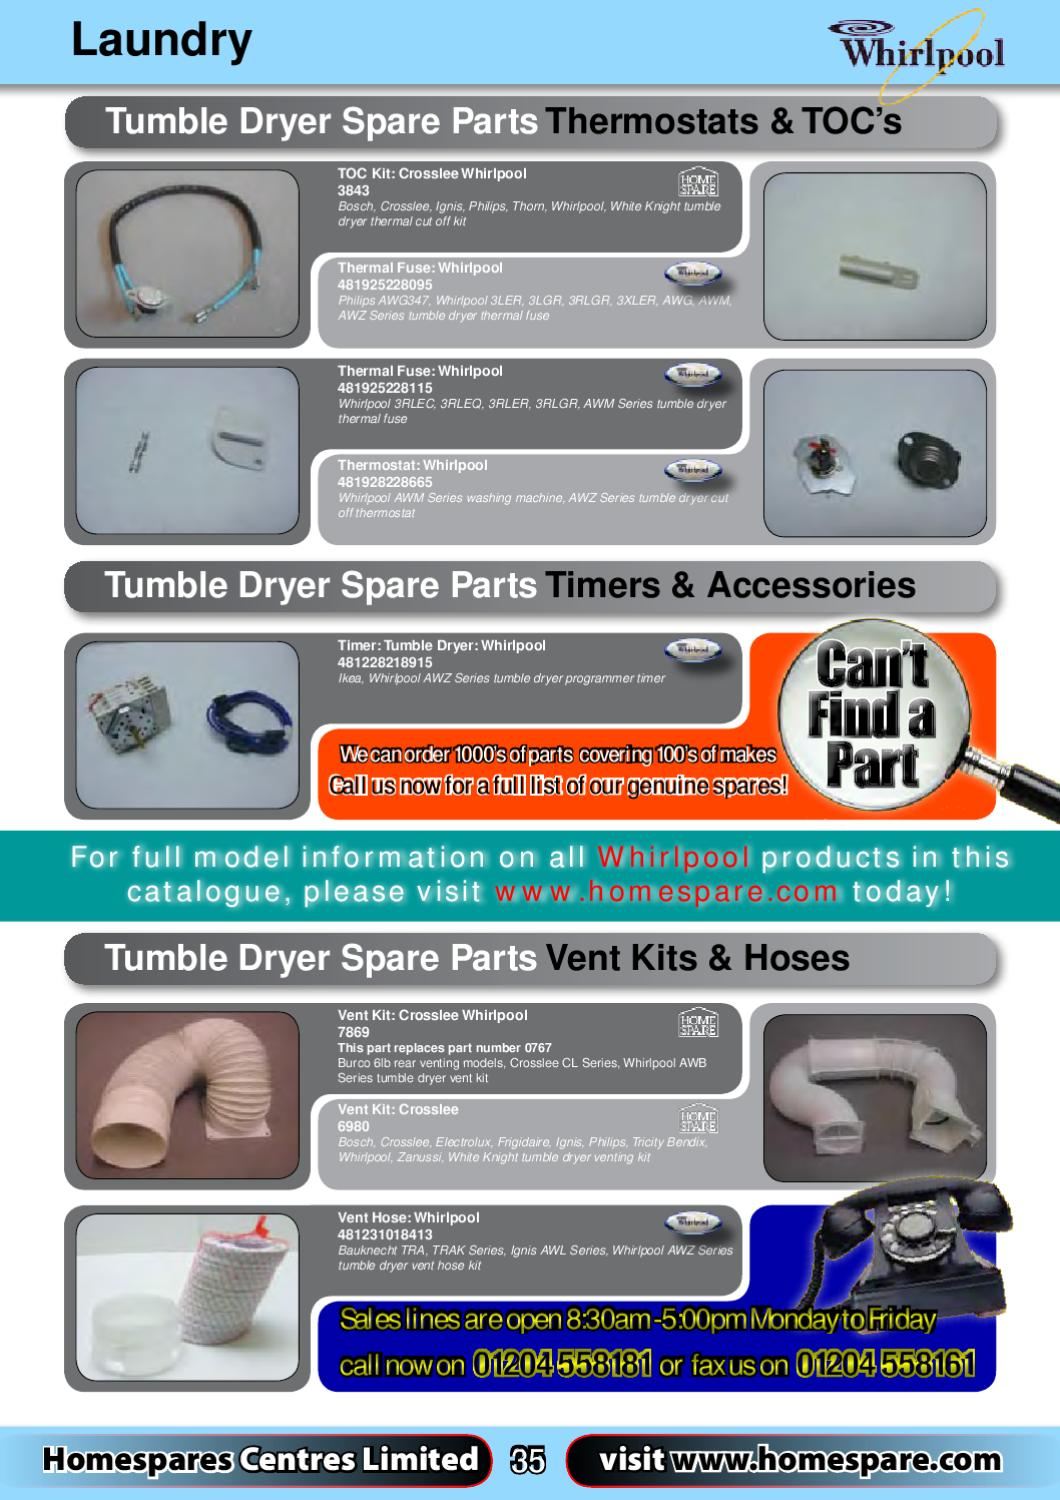 white knight tumble dryer wiring diagram 3 way switch with 2 lights spare parts manual reviewmotors co